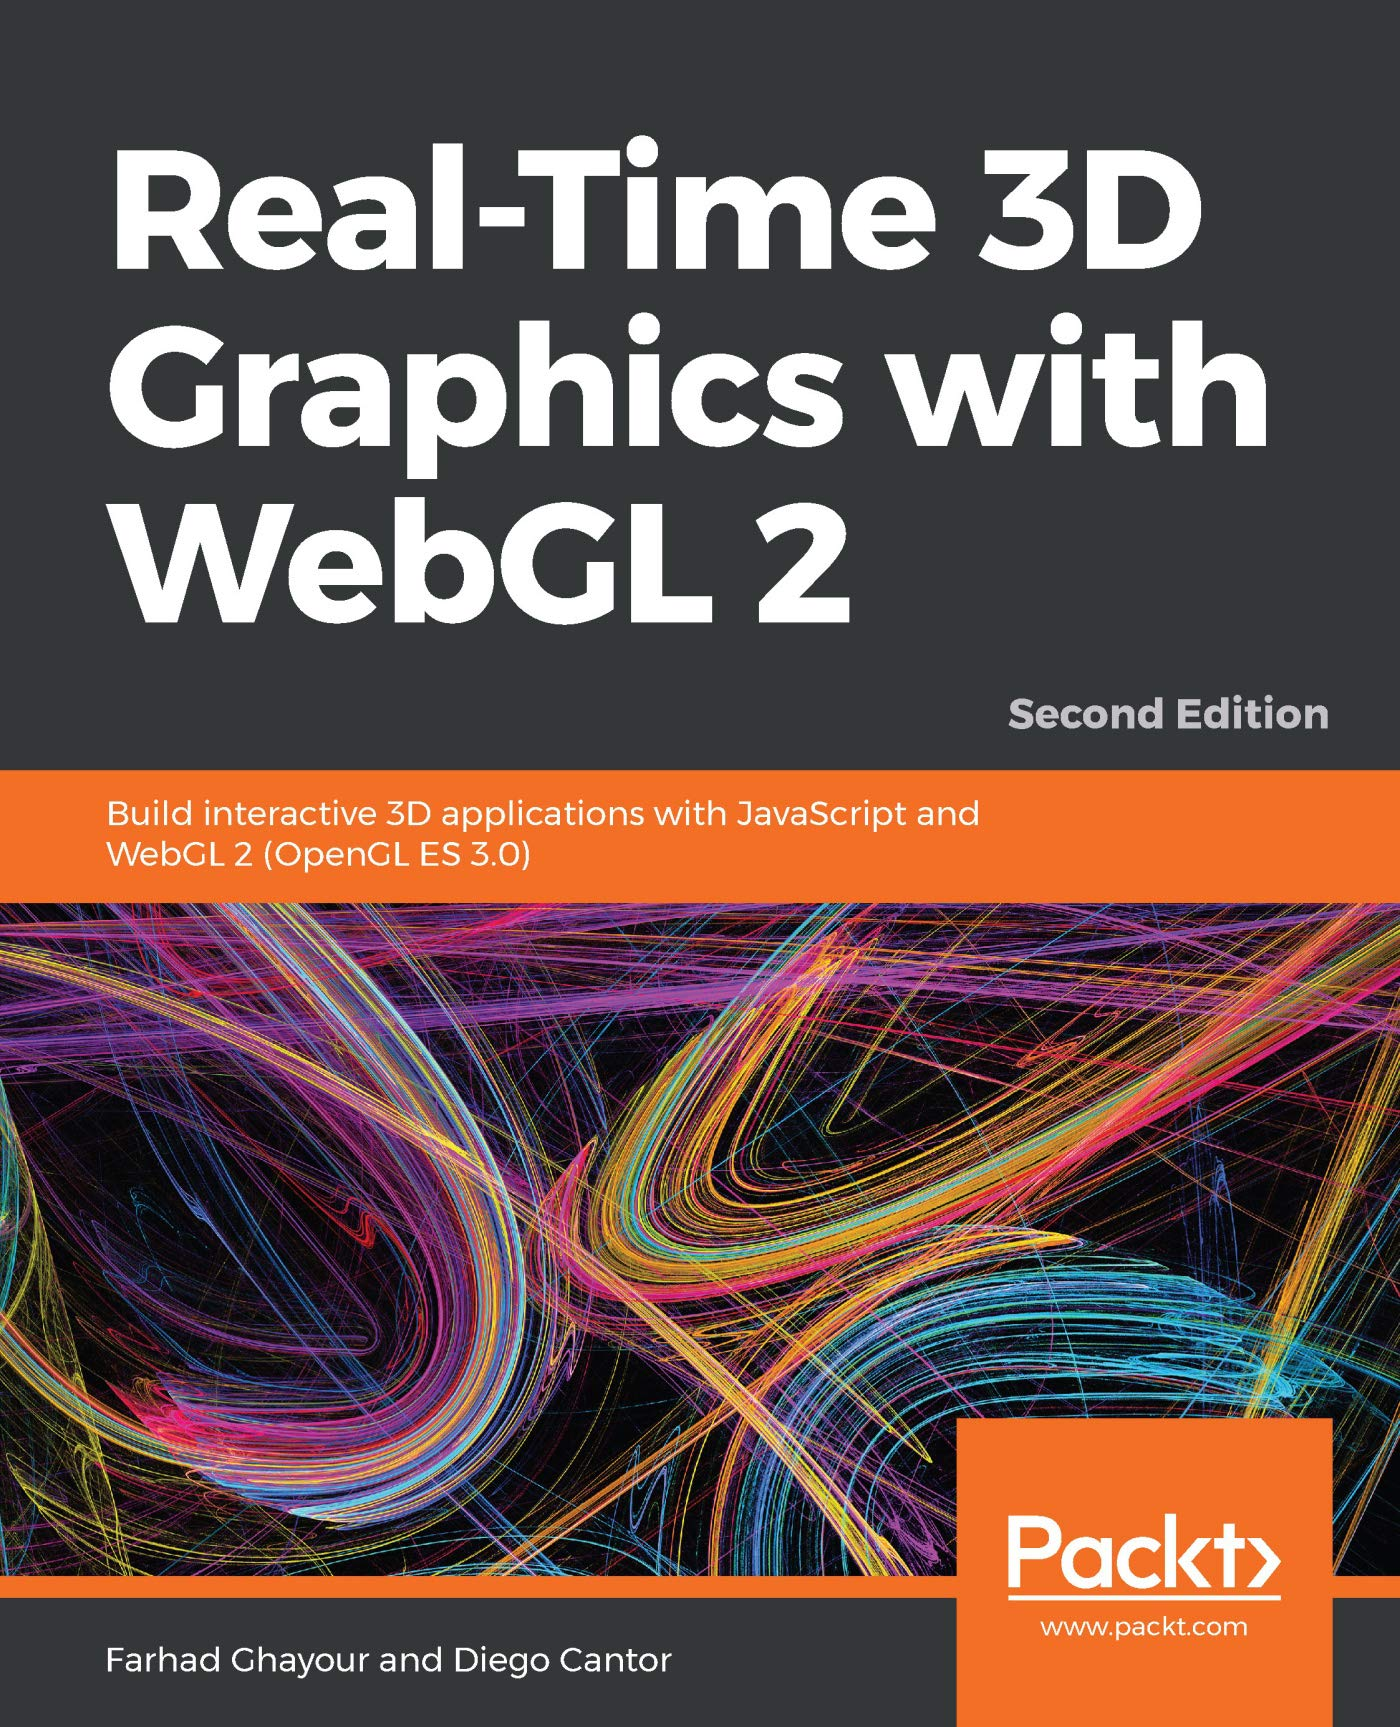 Real Time 3D Graphics with WebGL 2: Build interactive 3D applications with JavaScript and WebGL 2 (OpenGL ES 3.0), 2nd Edi...